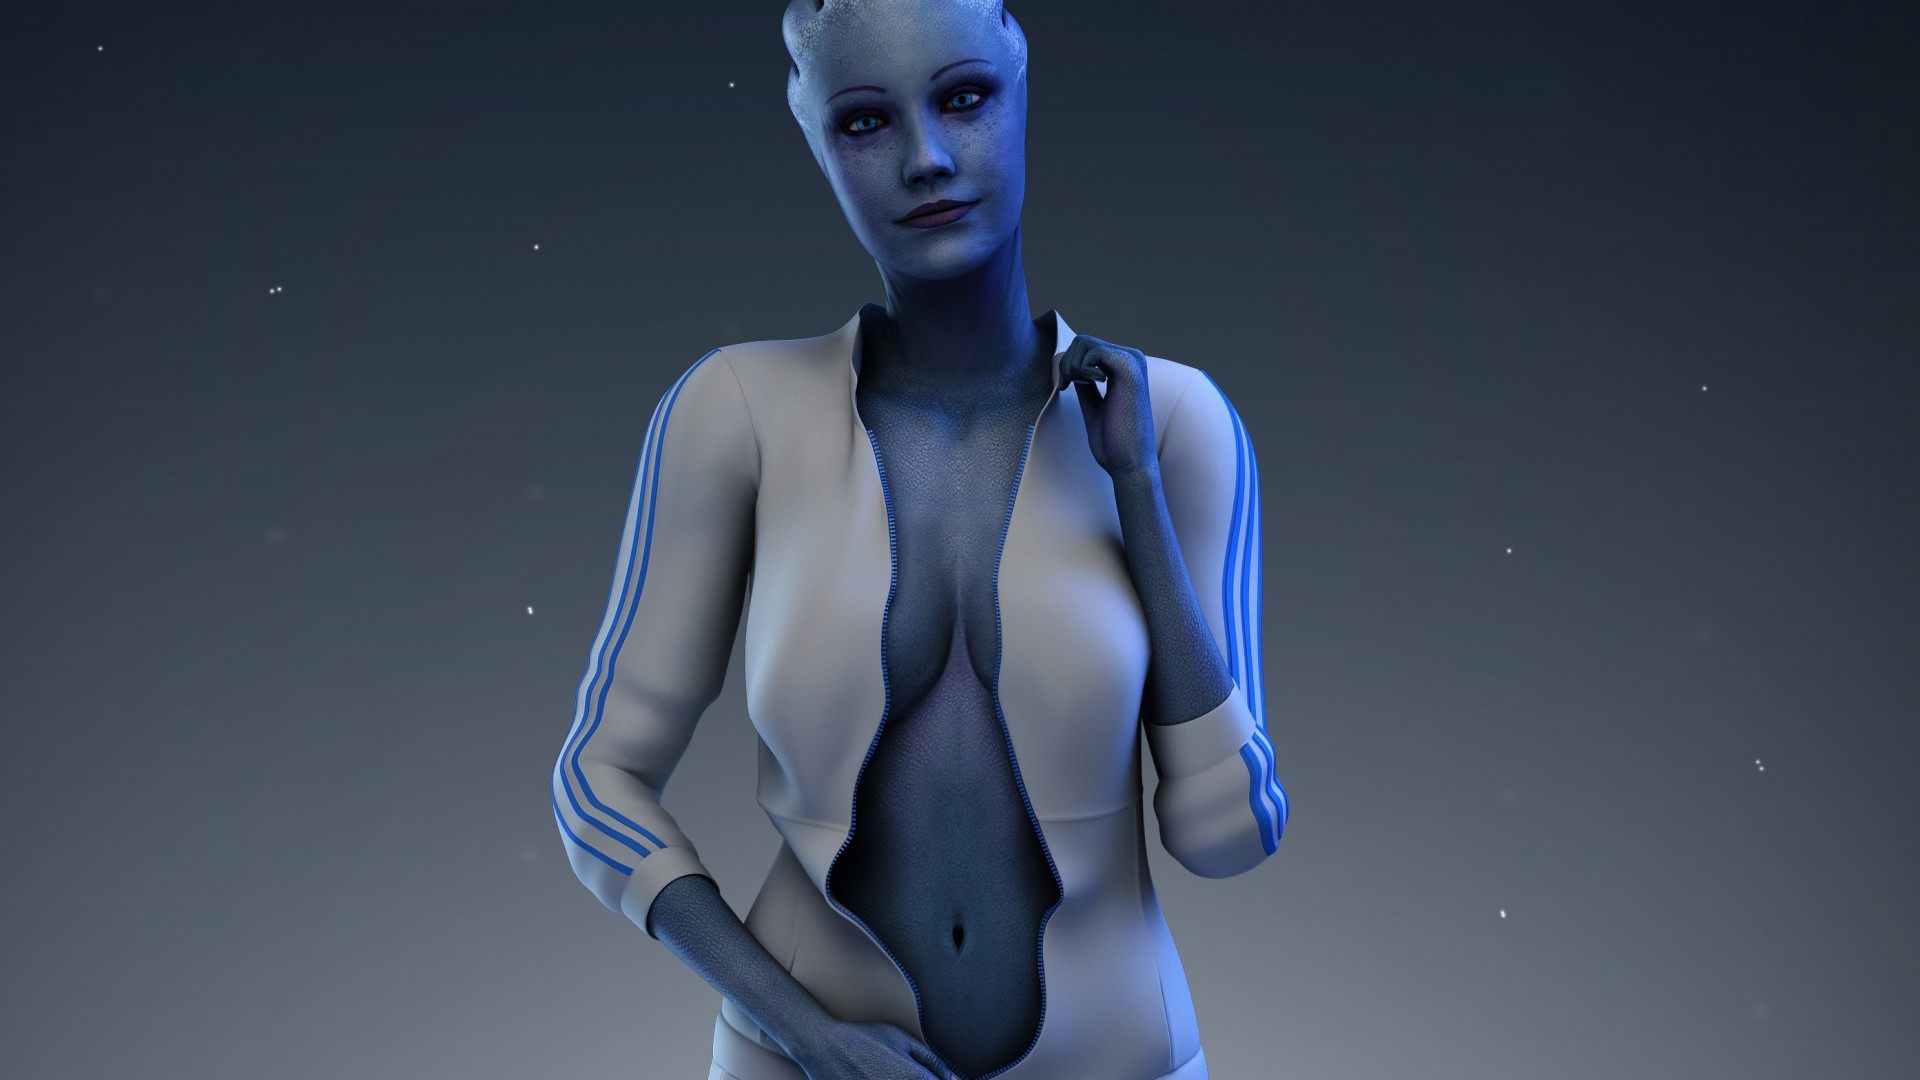 Mass effect 3 pregnant girl porn exposed pics